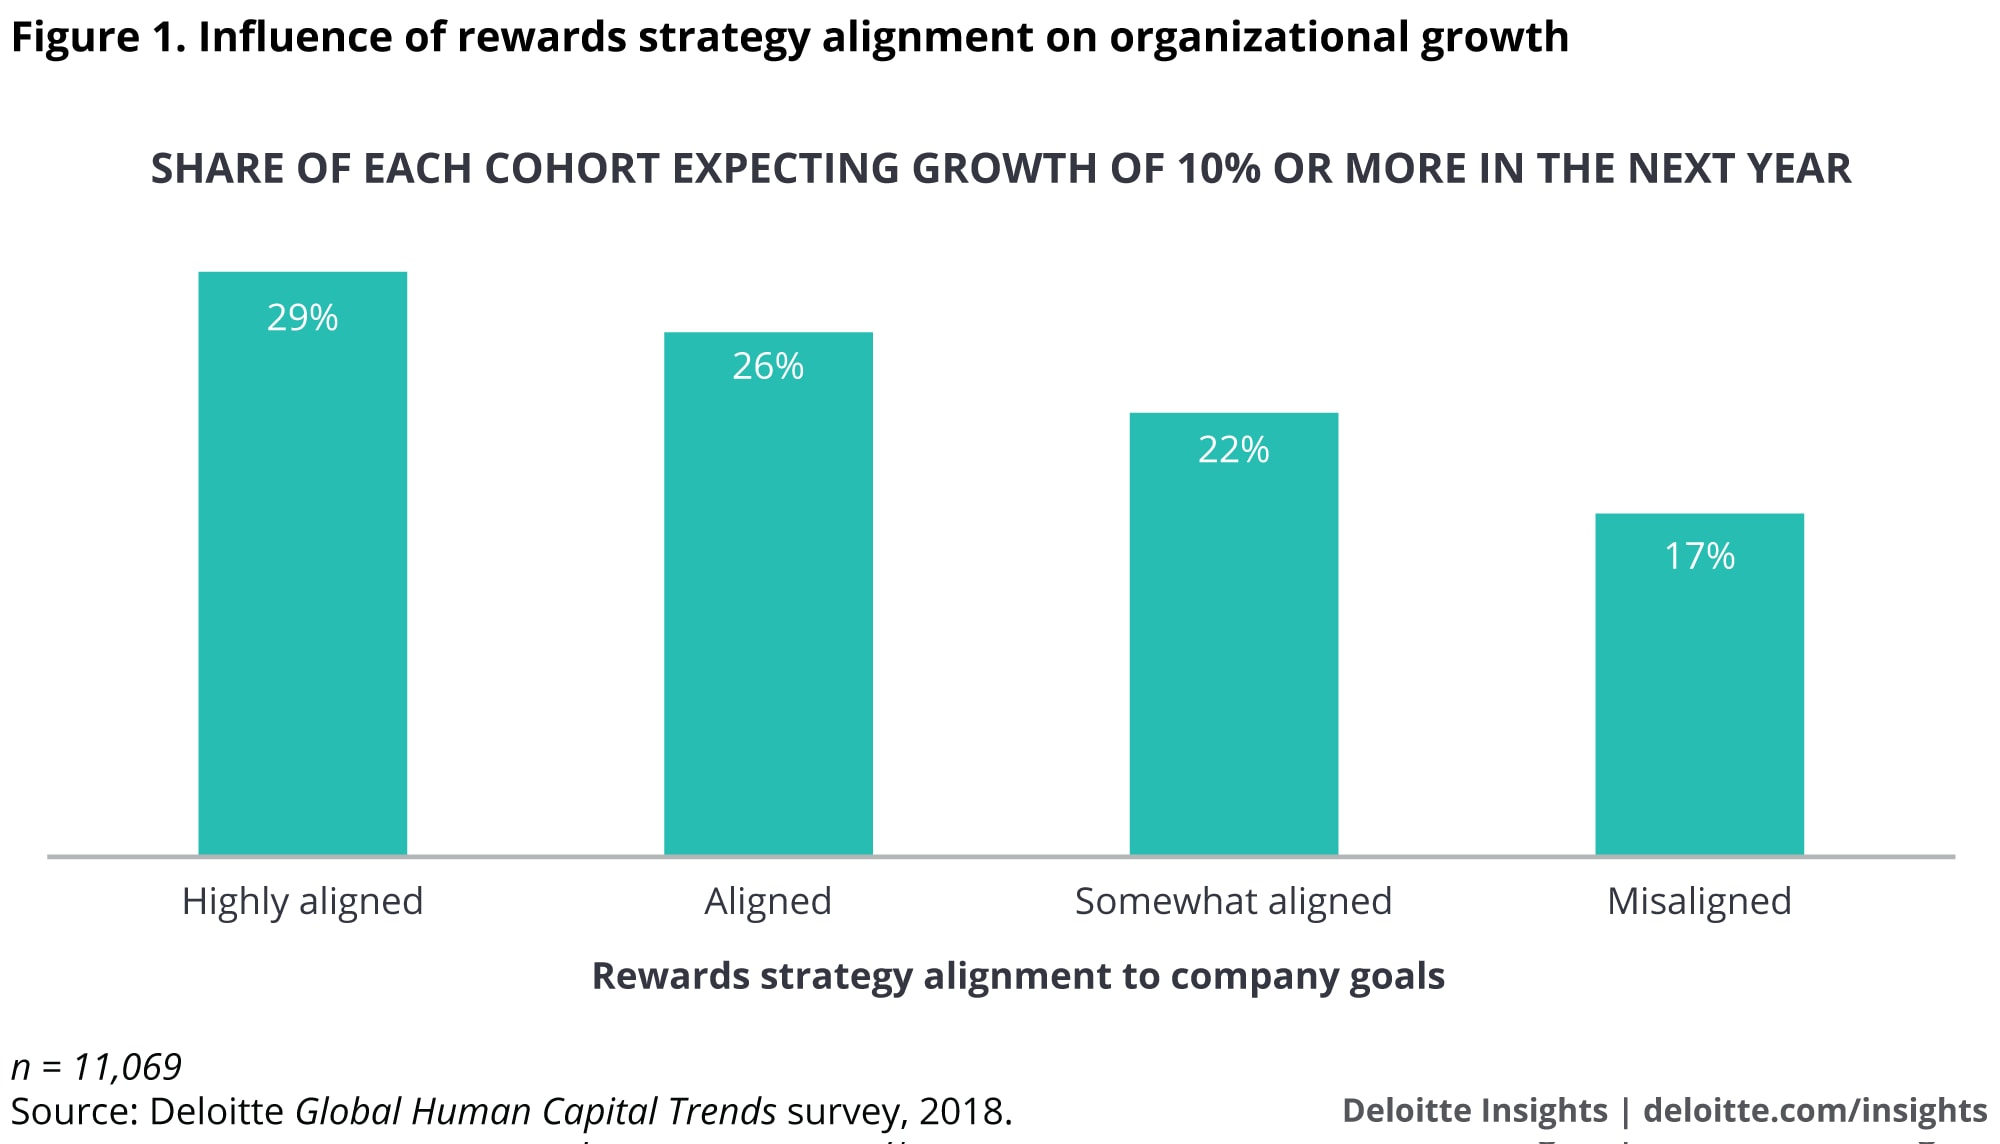 Influence of rewards strategy alignment on organizational growth